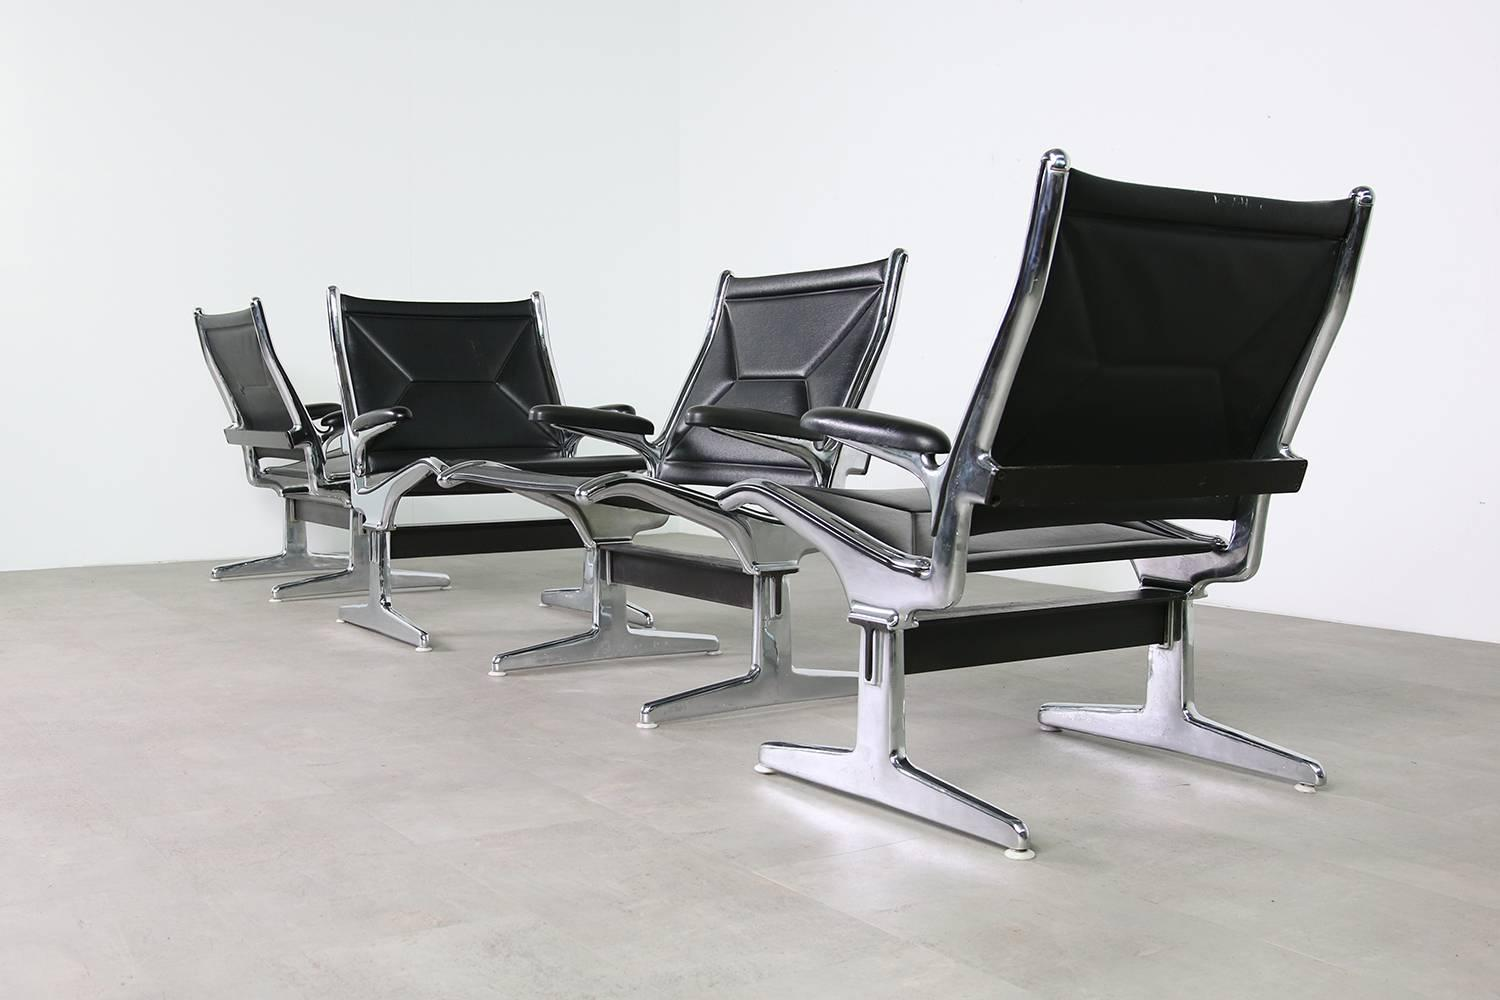 Danish Pair Of 1960s Charles Eames Airport Chairs For Herman Miller, Black  And Chrome For